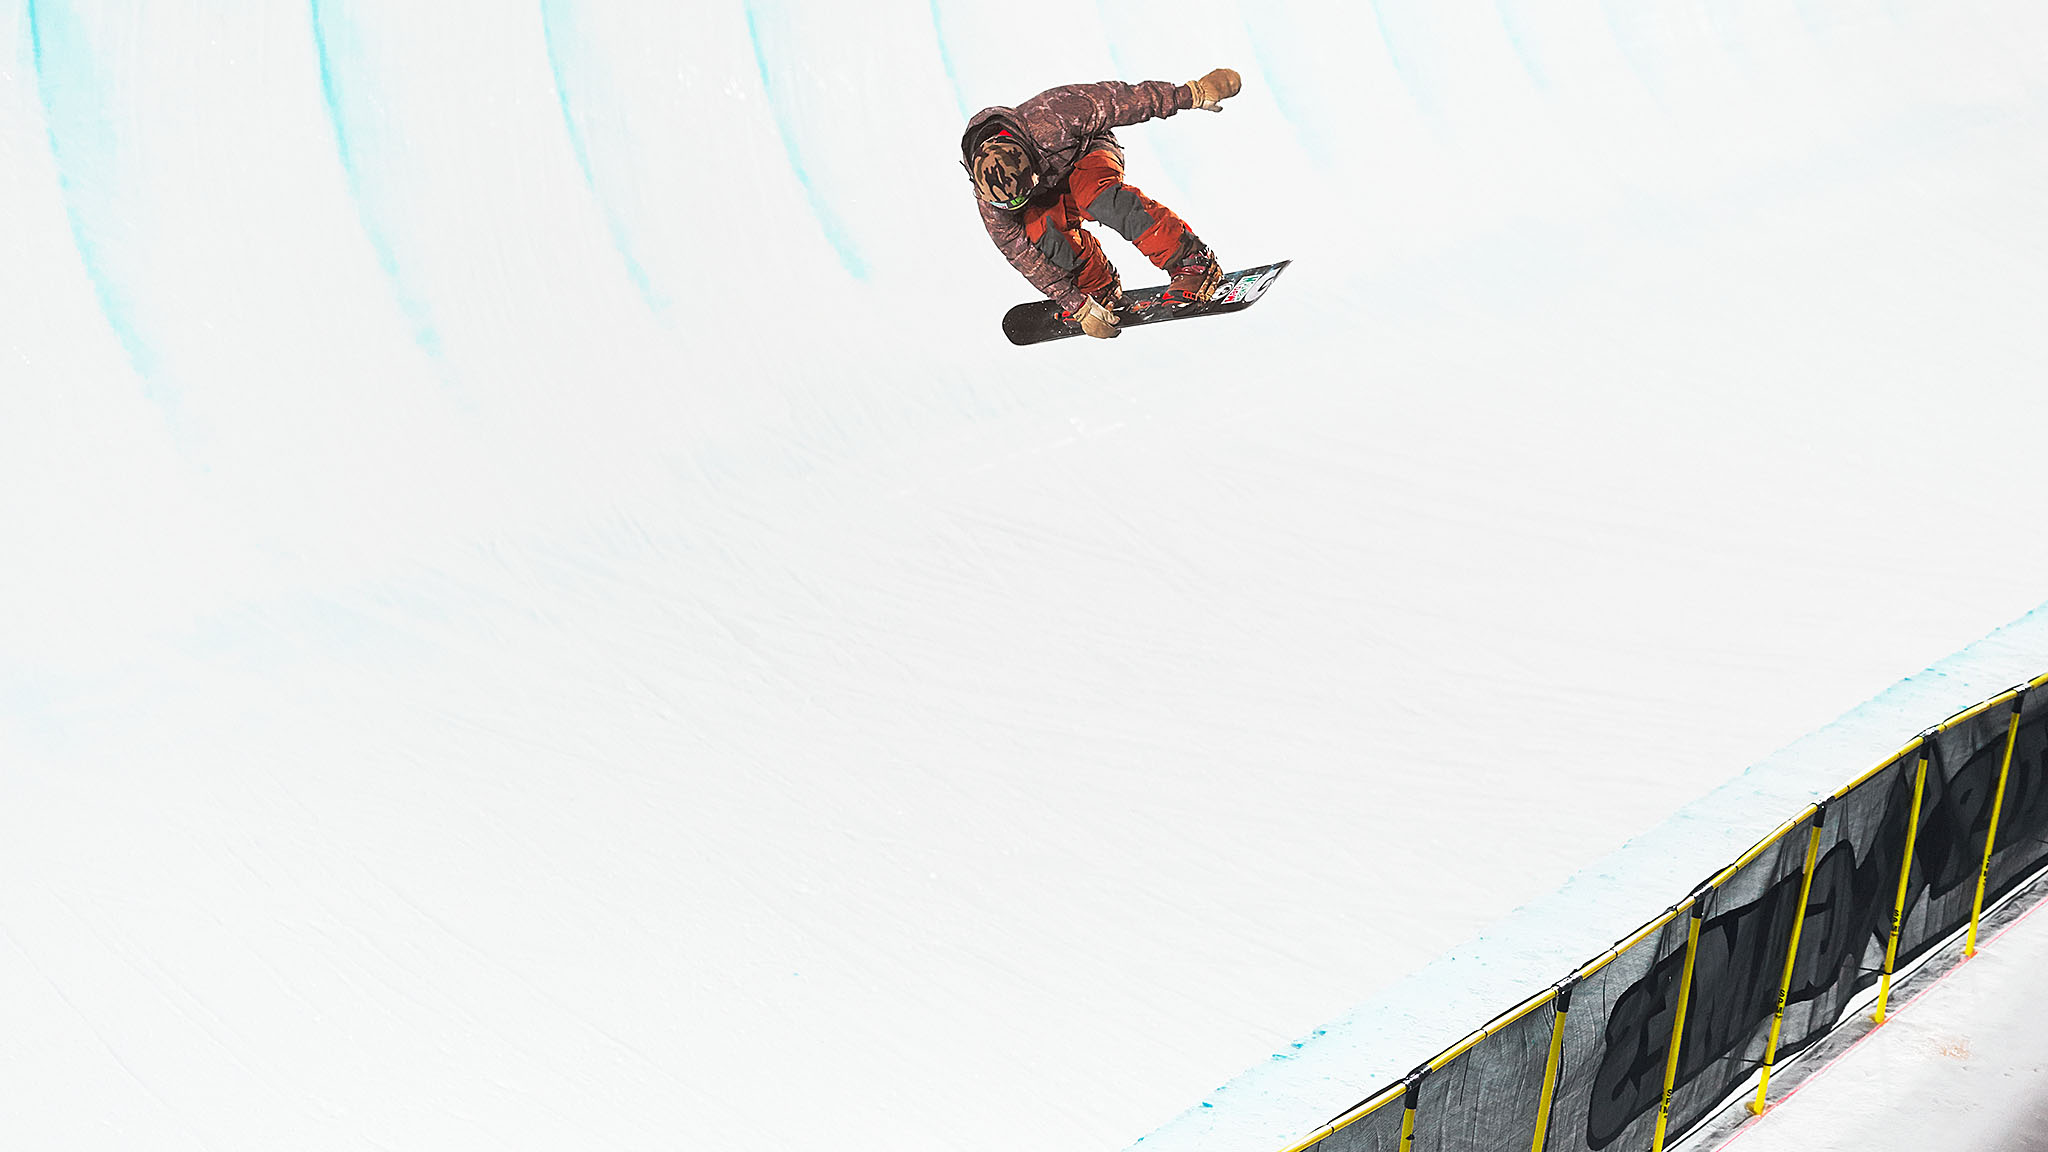 Danny Davis has been blowing minds in the U.S. Olympic team qualifiers  with a run full of switch tricks that he's getting higher and higher out of the pipe every contest he enters. When you watch him ride in the SuperPipe finals on Sunday night, remember: Those are all hard tricks, but he's doing them ibackward./i